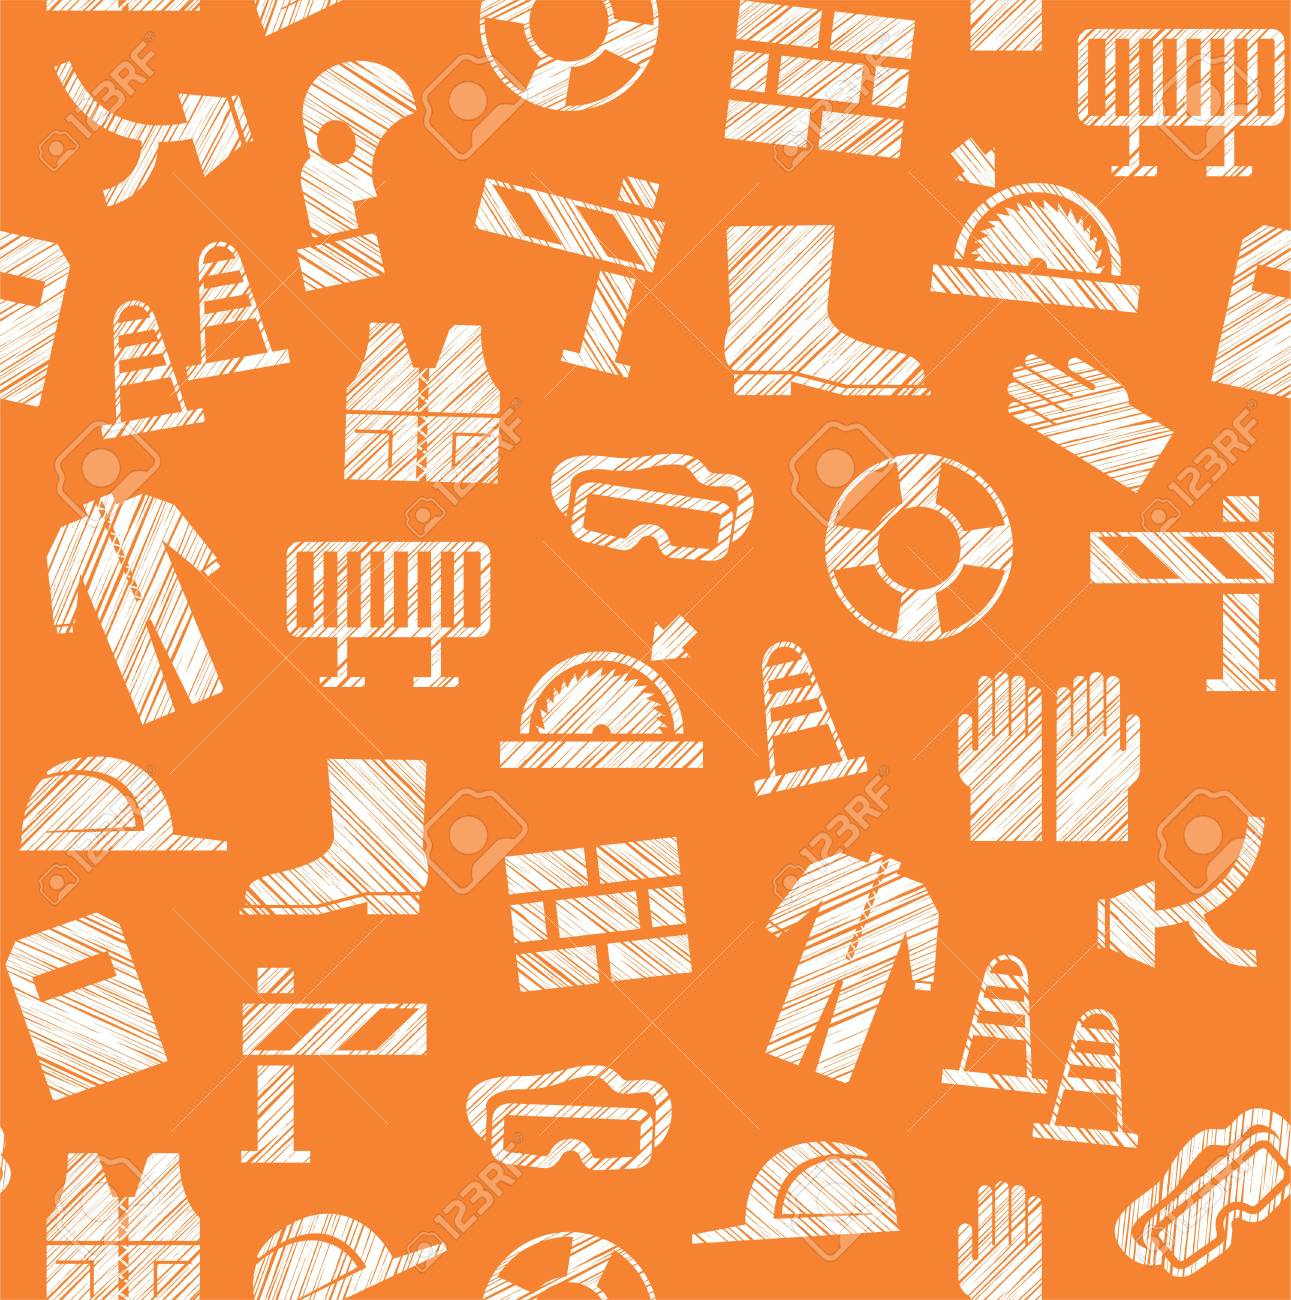 Labor Safety Safety At Work Labor Protection Seamless Pattern Orange Pencil